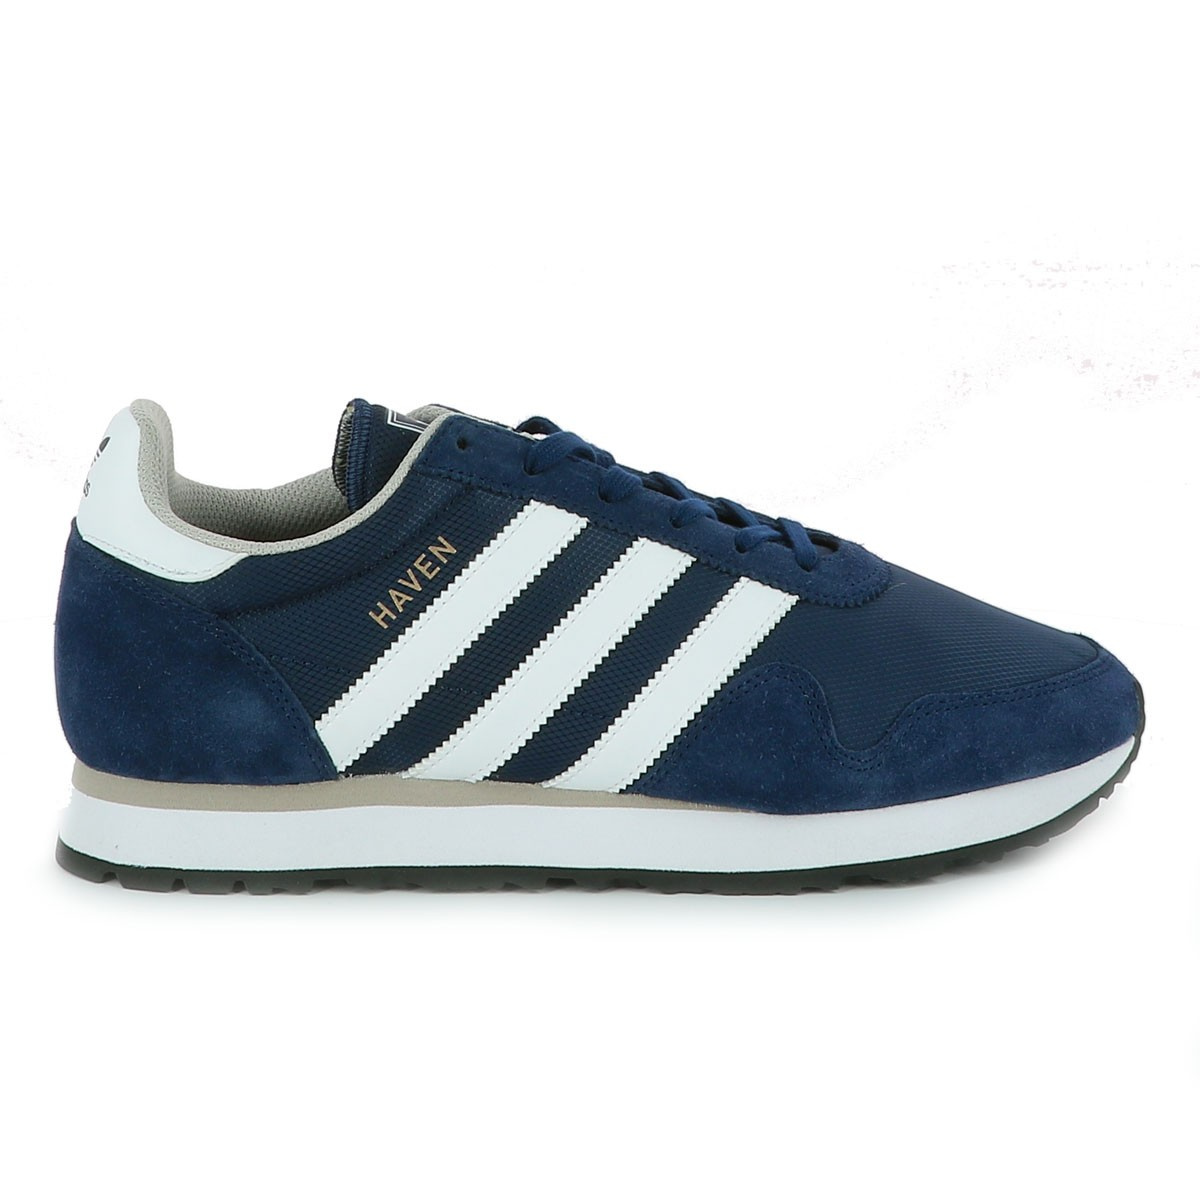 Baskets Haven homme bleu Adidas,adidas ,ADIDAS,stan smith